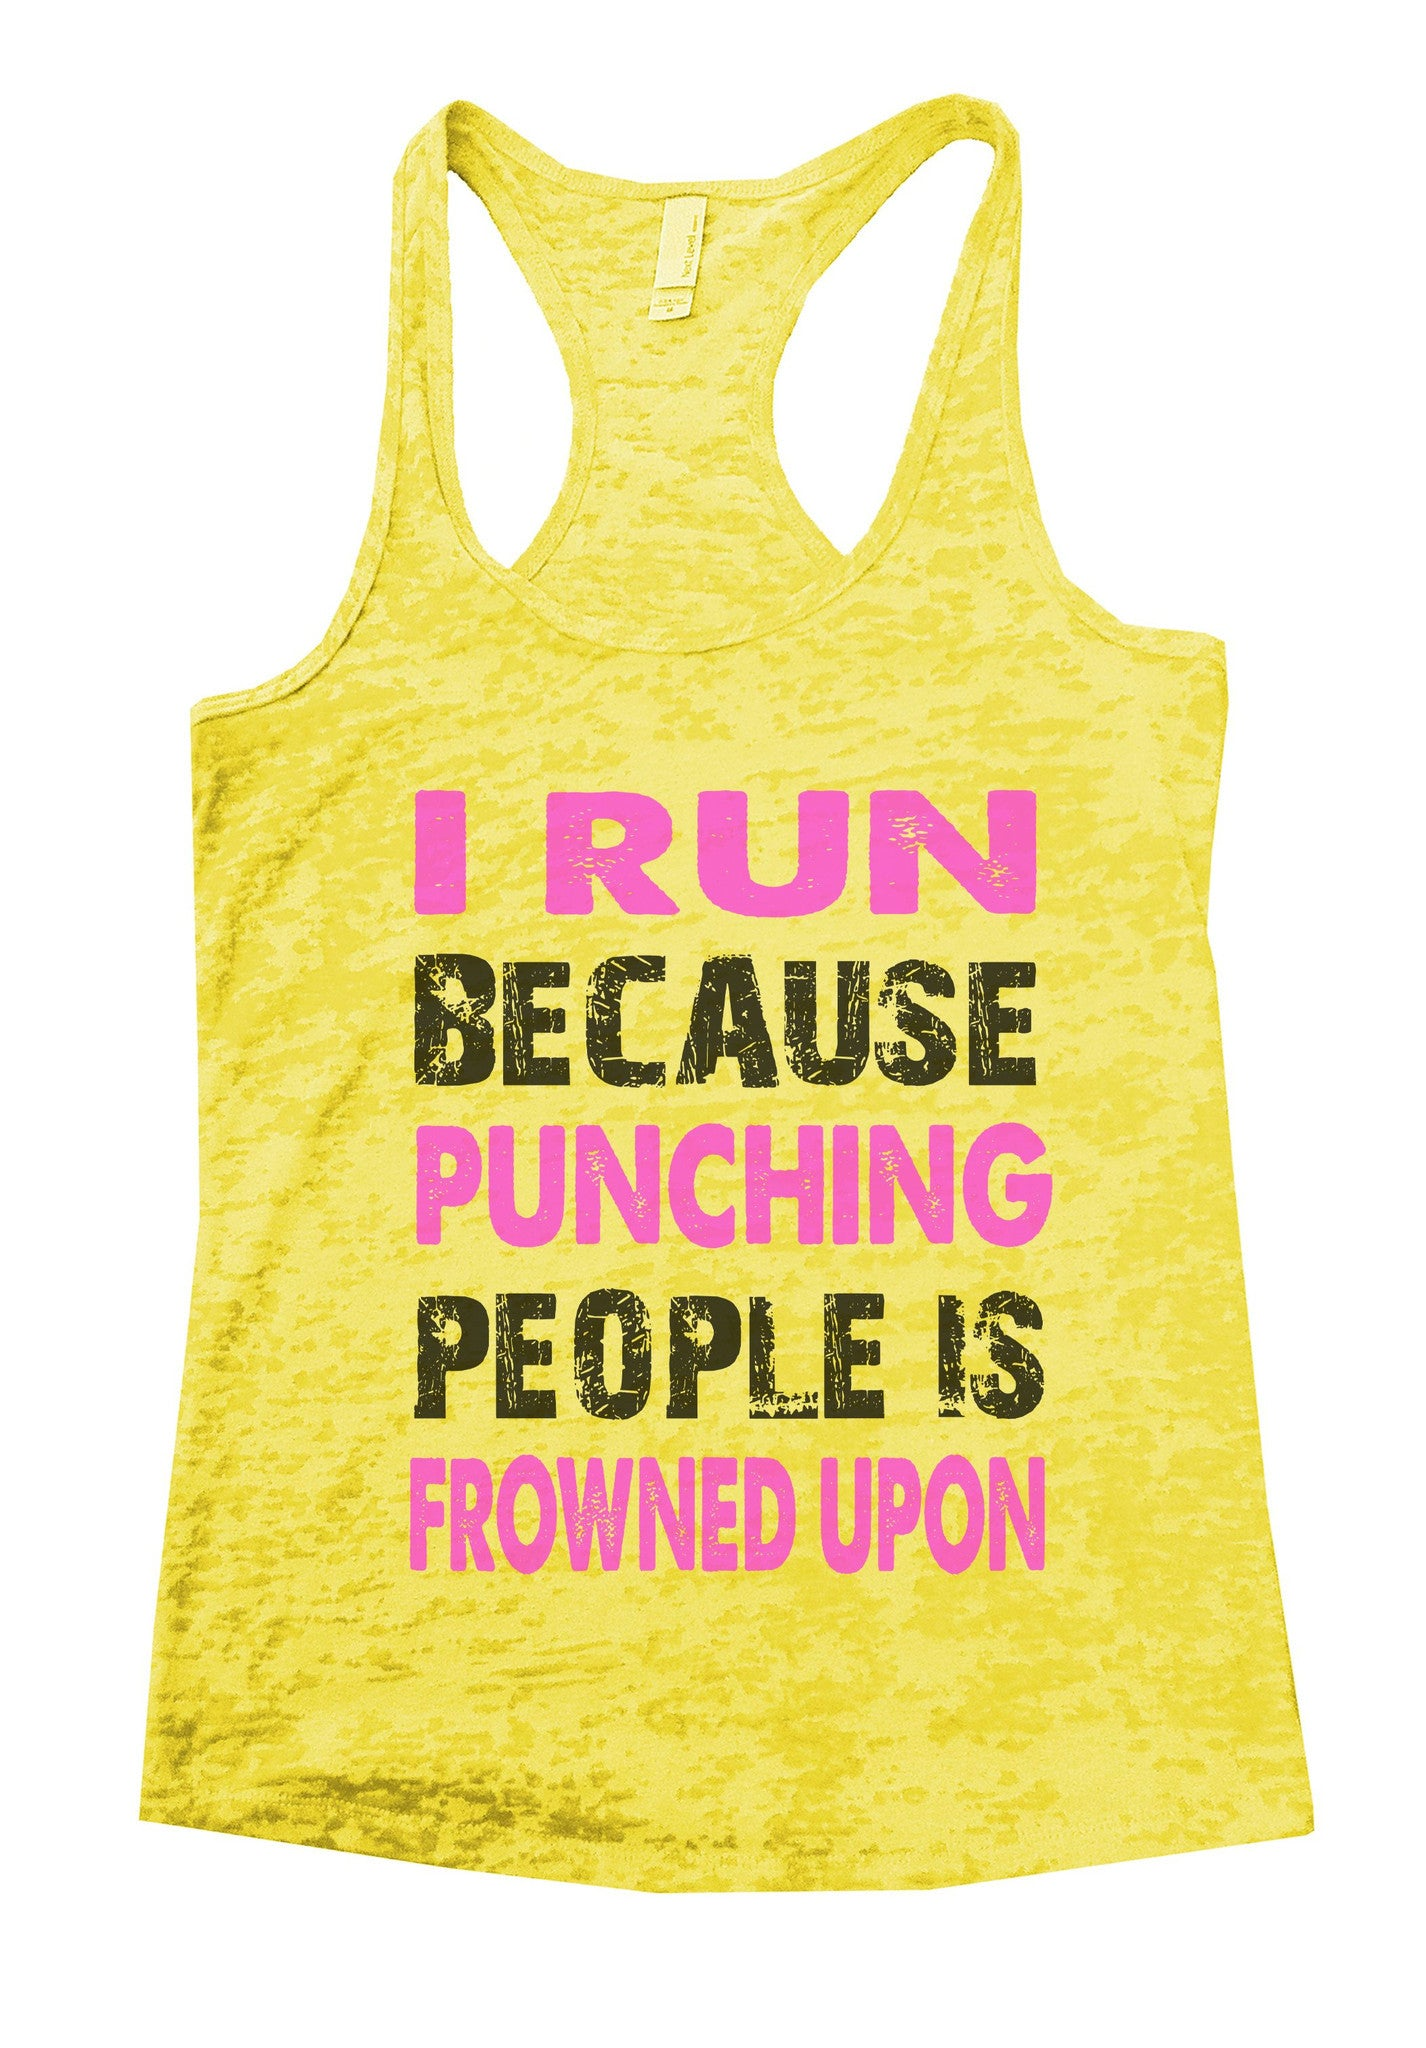 I Run Because Punching People Is Frowned Upon Burnout Tank Top By BurnoutTankTops.com - 708 - Funny Shirts Tank Tops Burnouts and Triblends  - 6